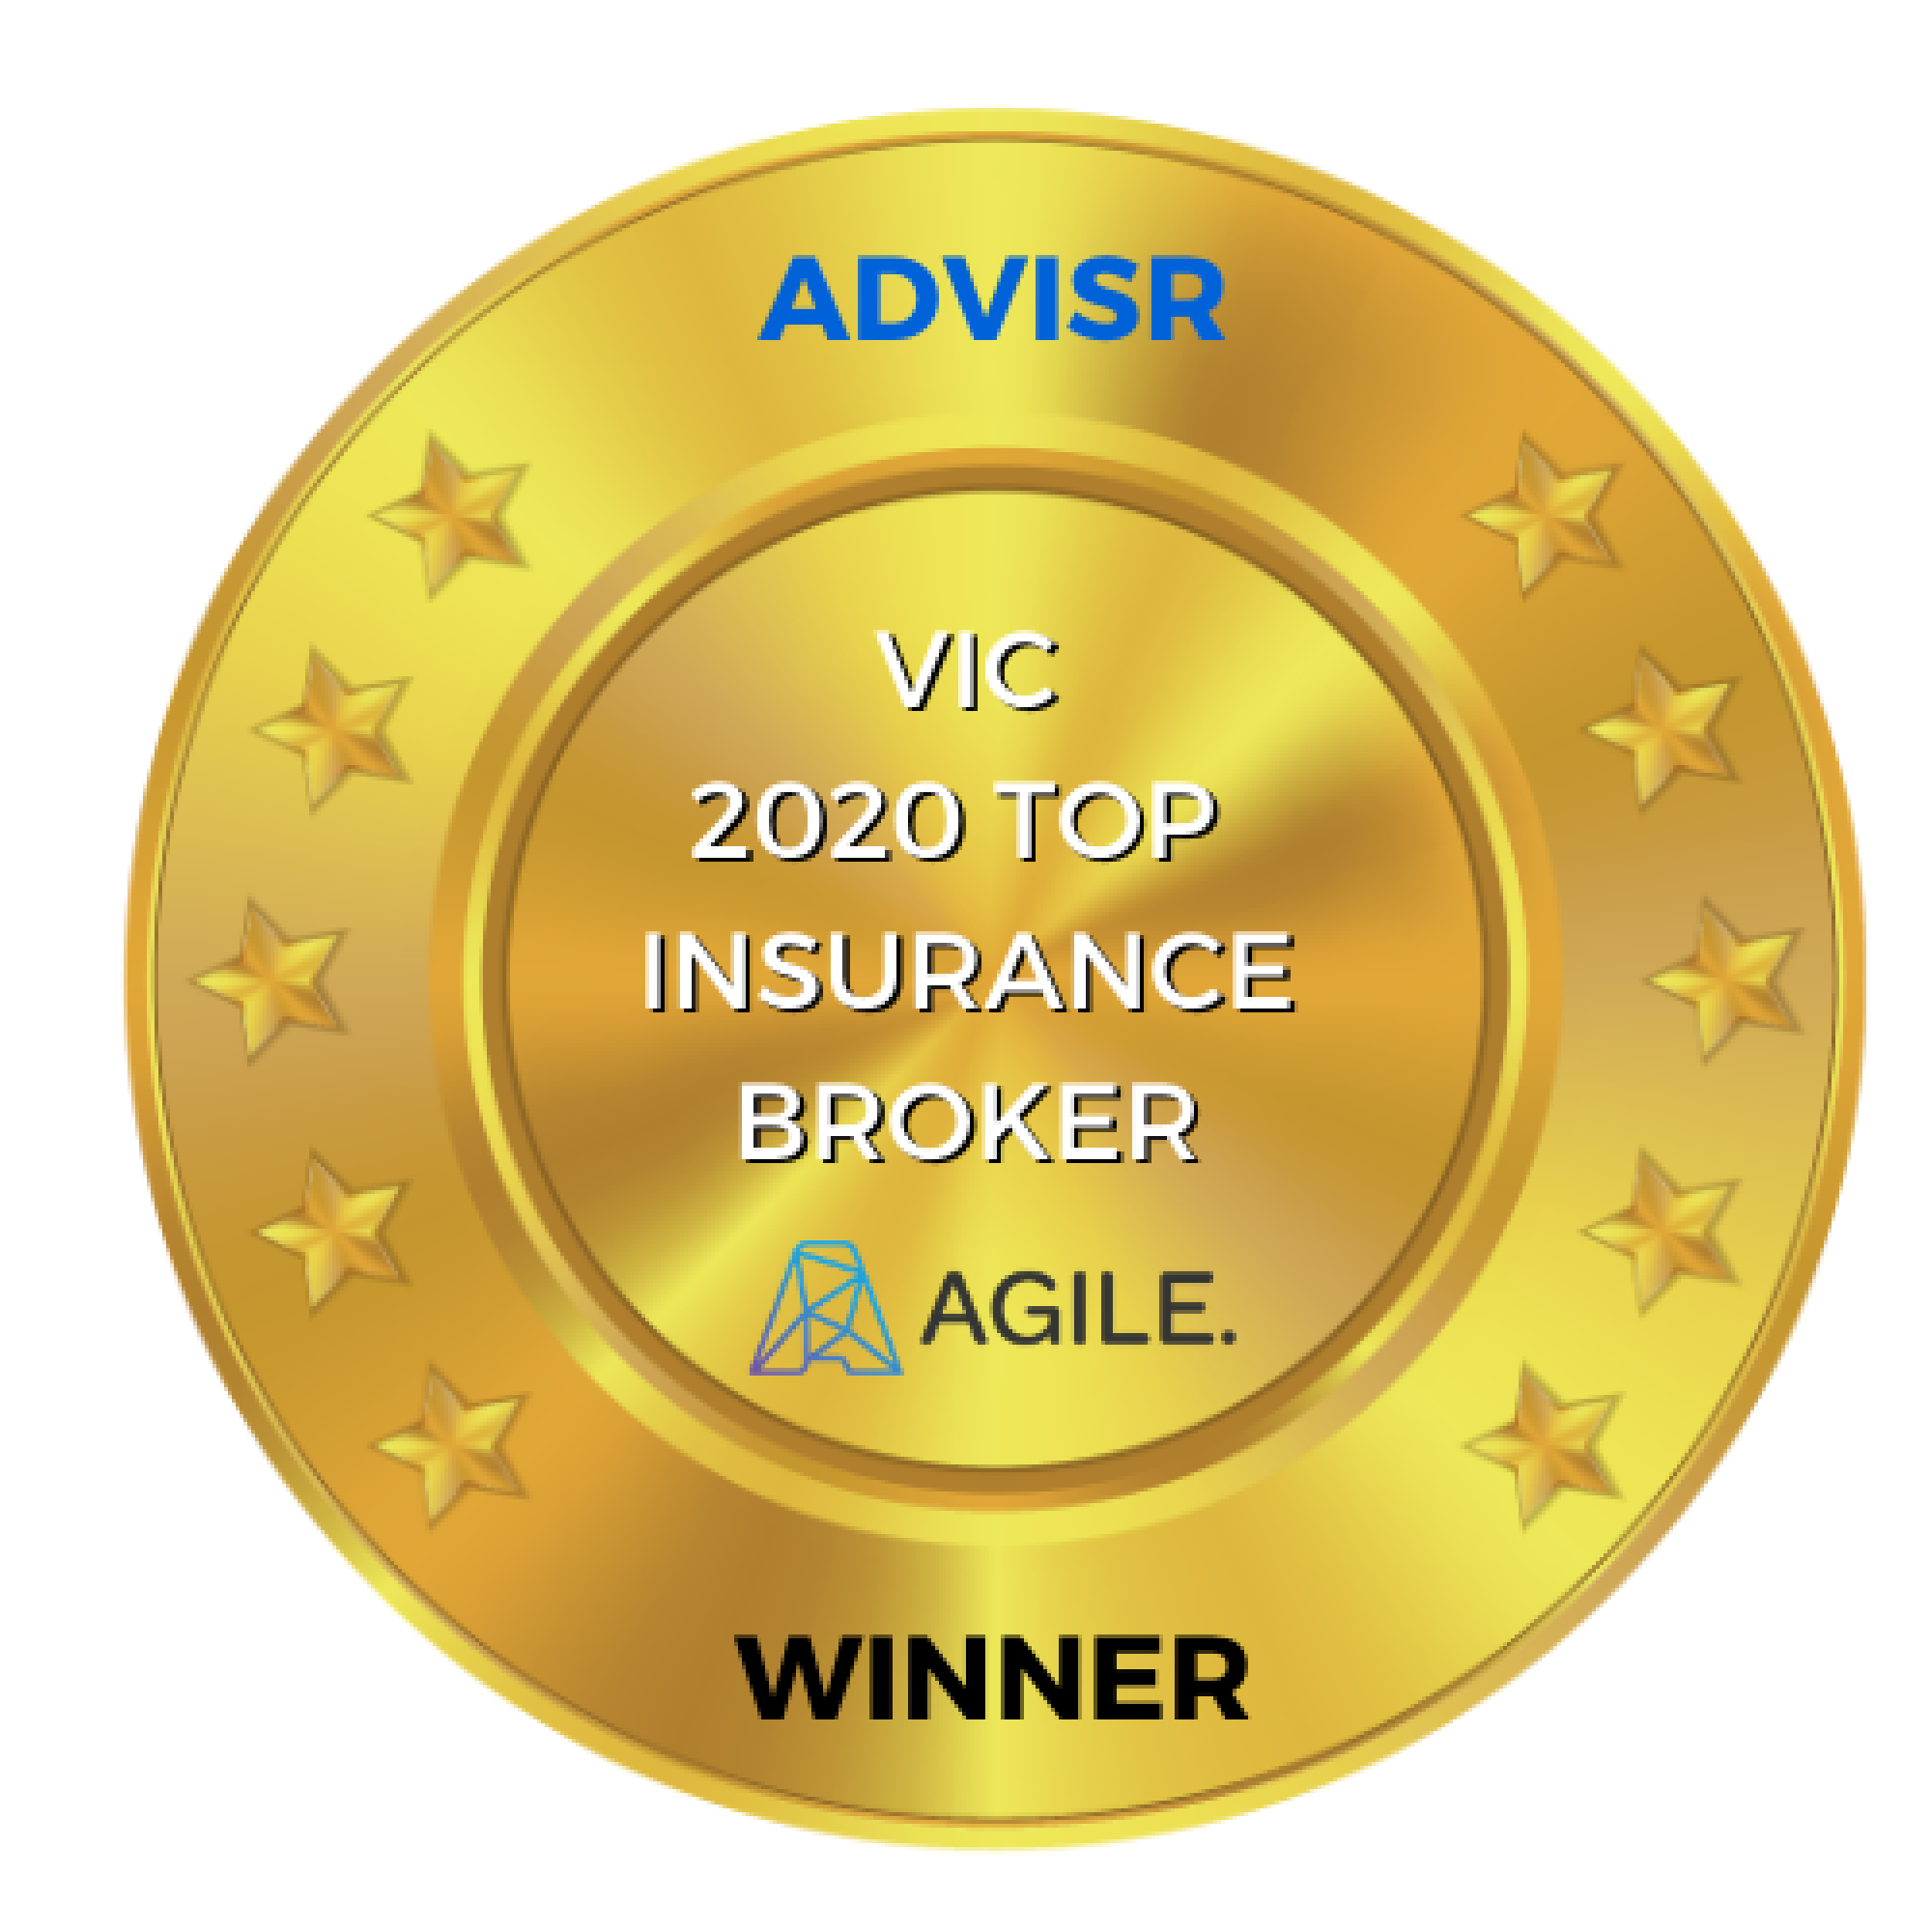 Advisr Insurance Broker Awards 2020 Winner | Victoria Top Insurance Broker